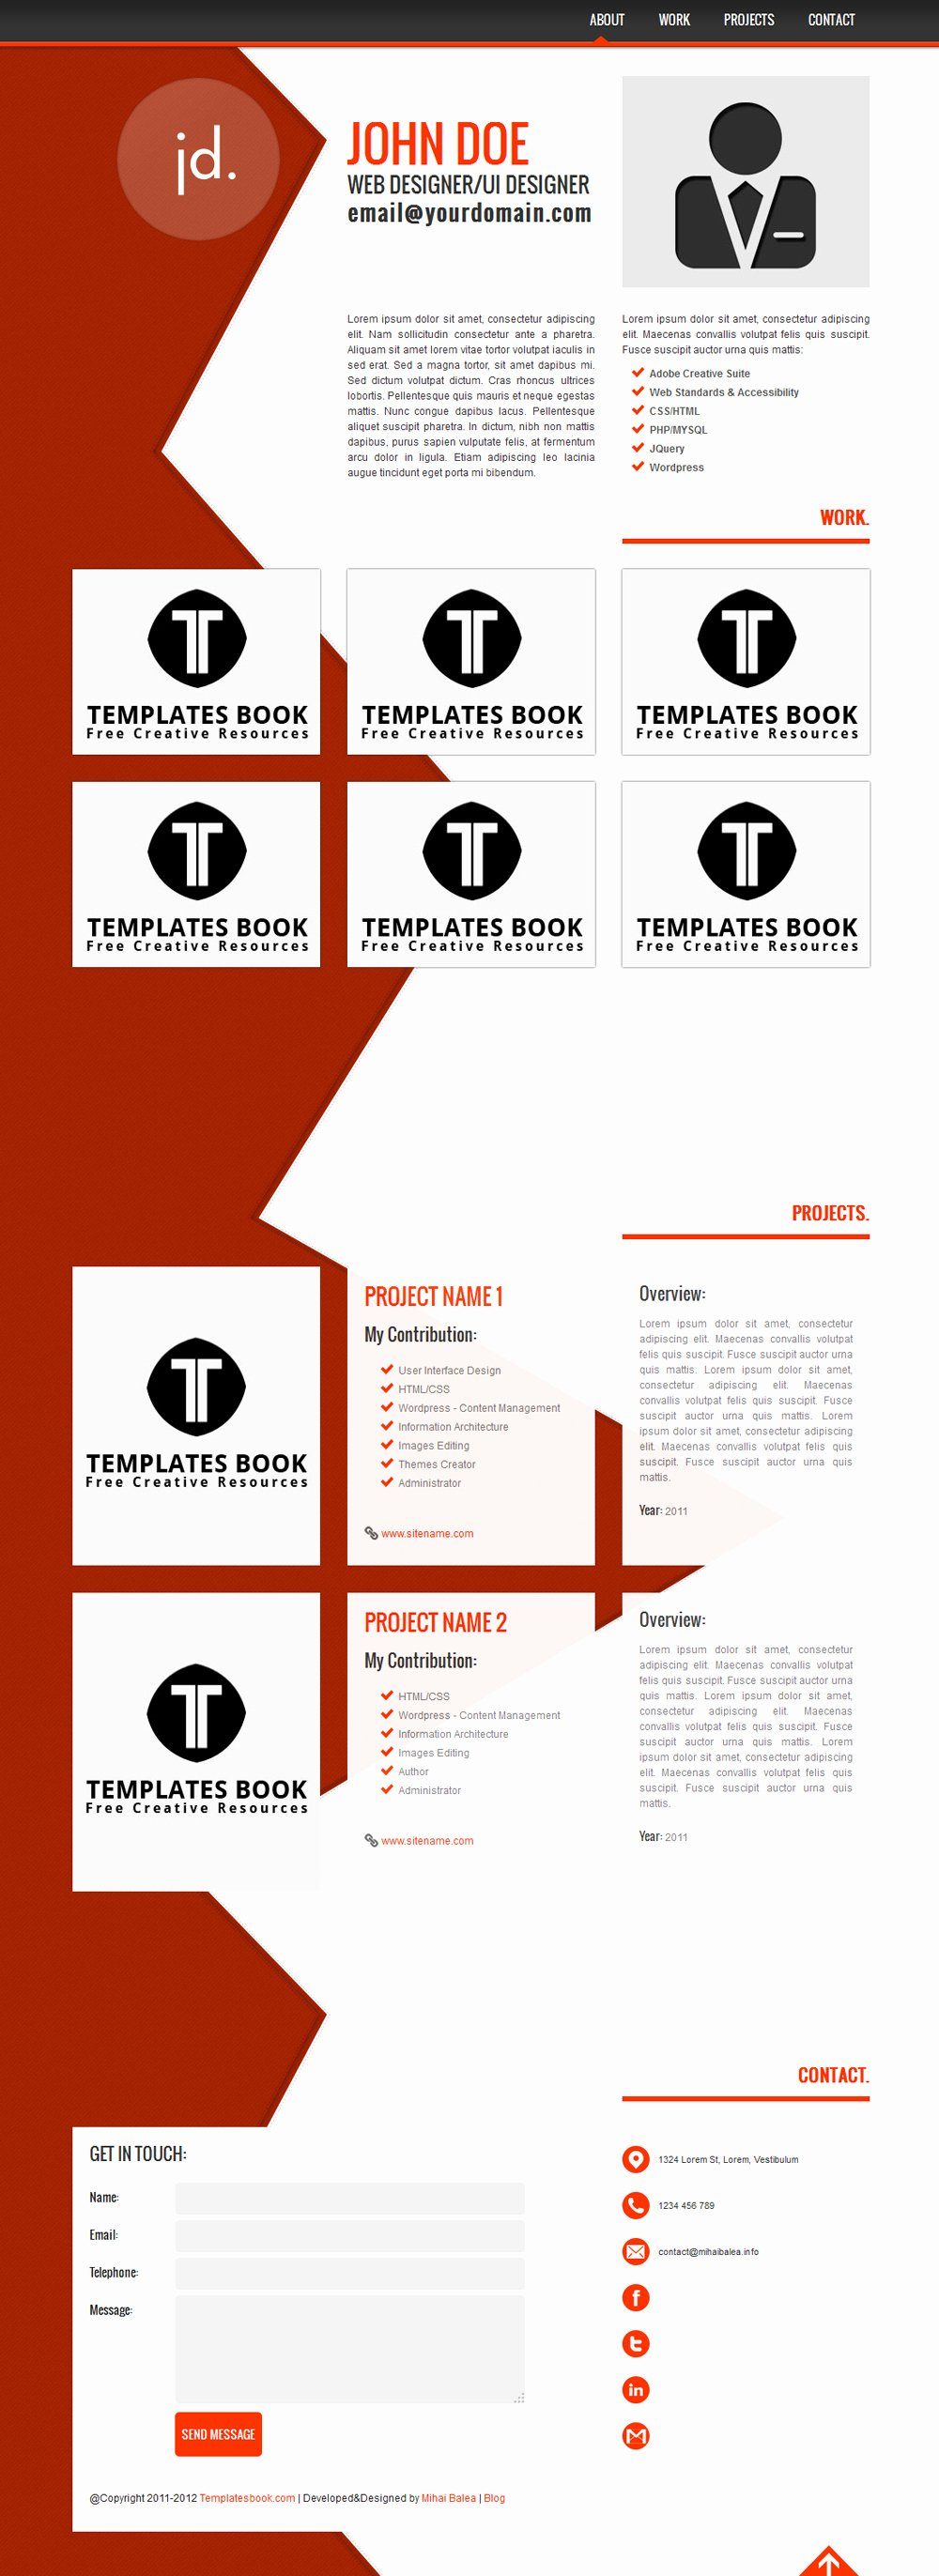 Resume Website Template Free Awesome 15 Best Free Line Resume Cv Website Templates and themes